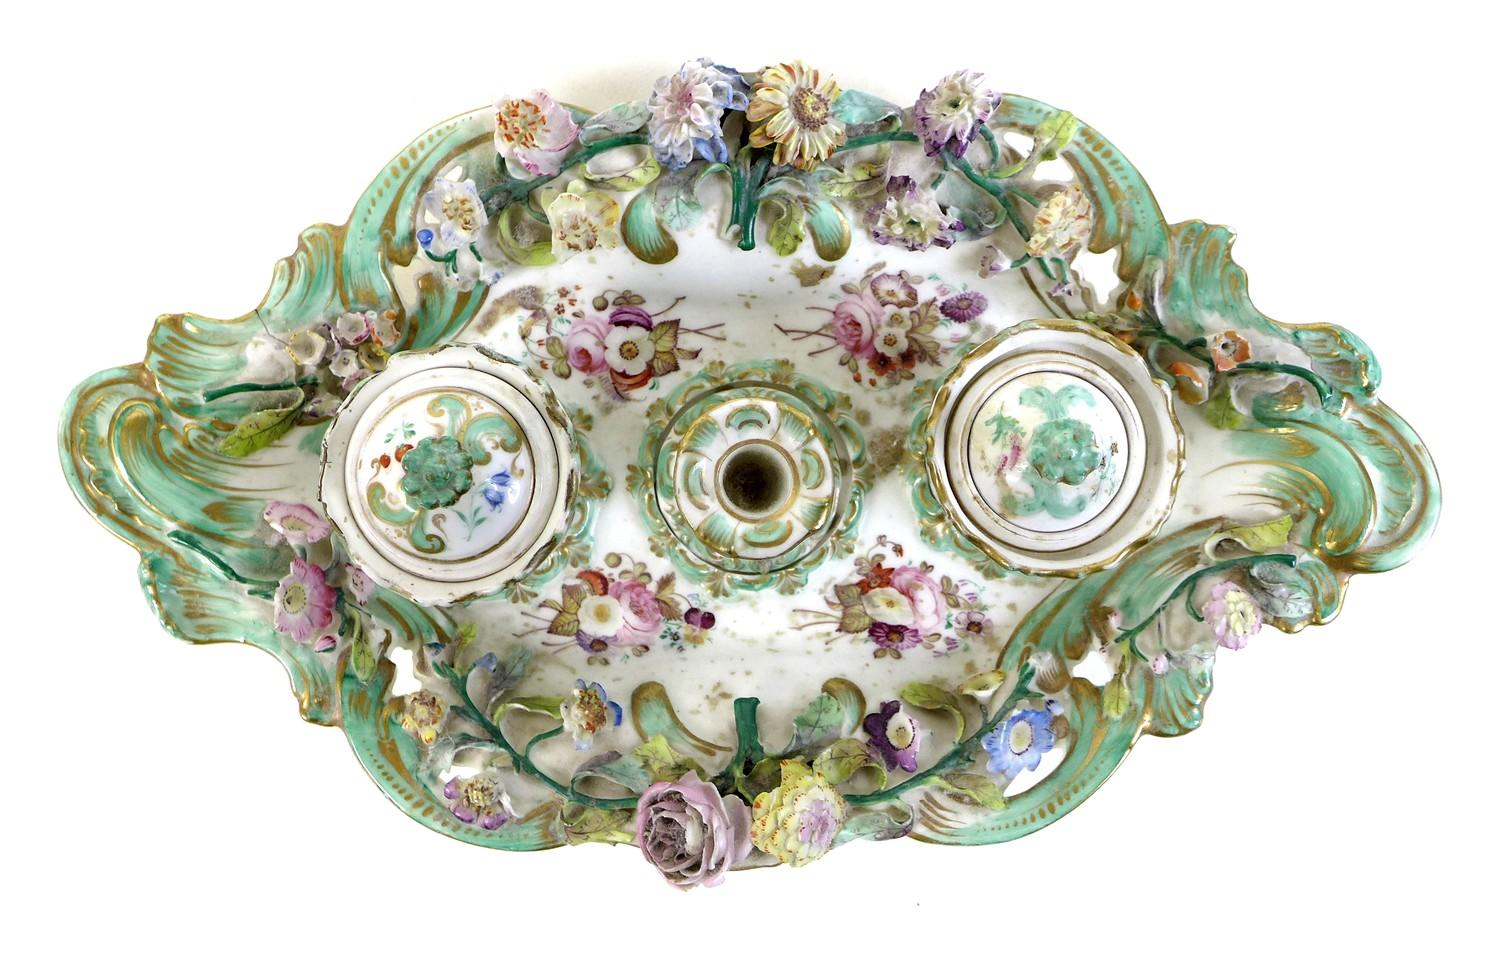 Lot 5 - A Continental porcelain desk stand, 19th century, in rococo taste with applied and painted